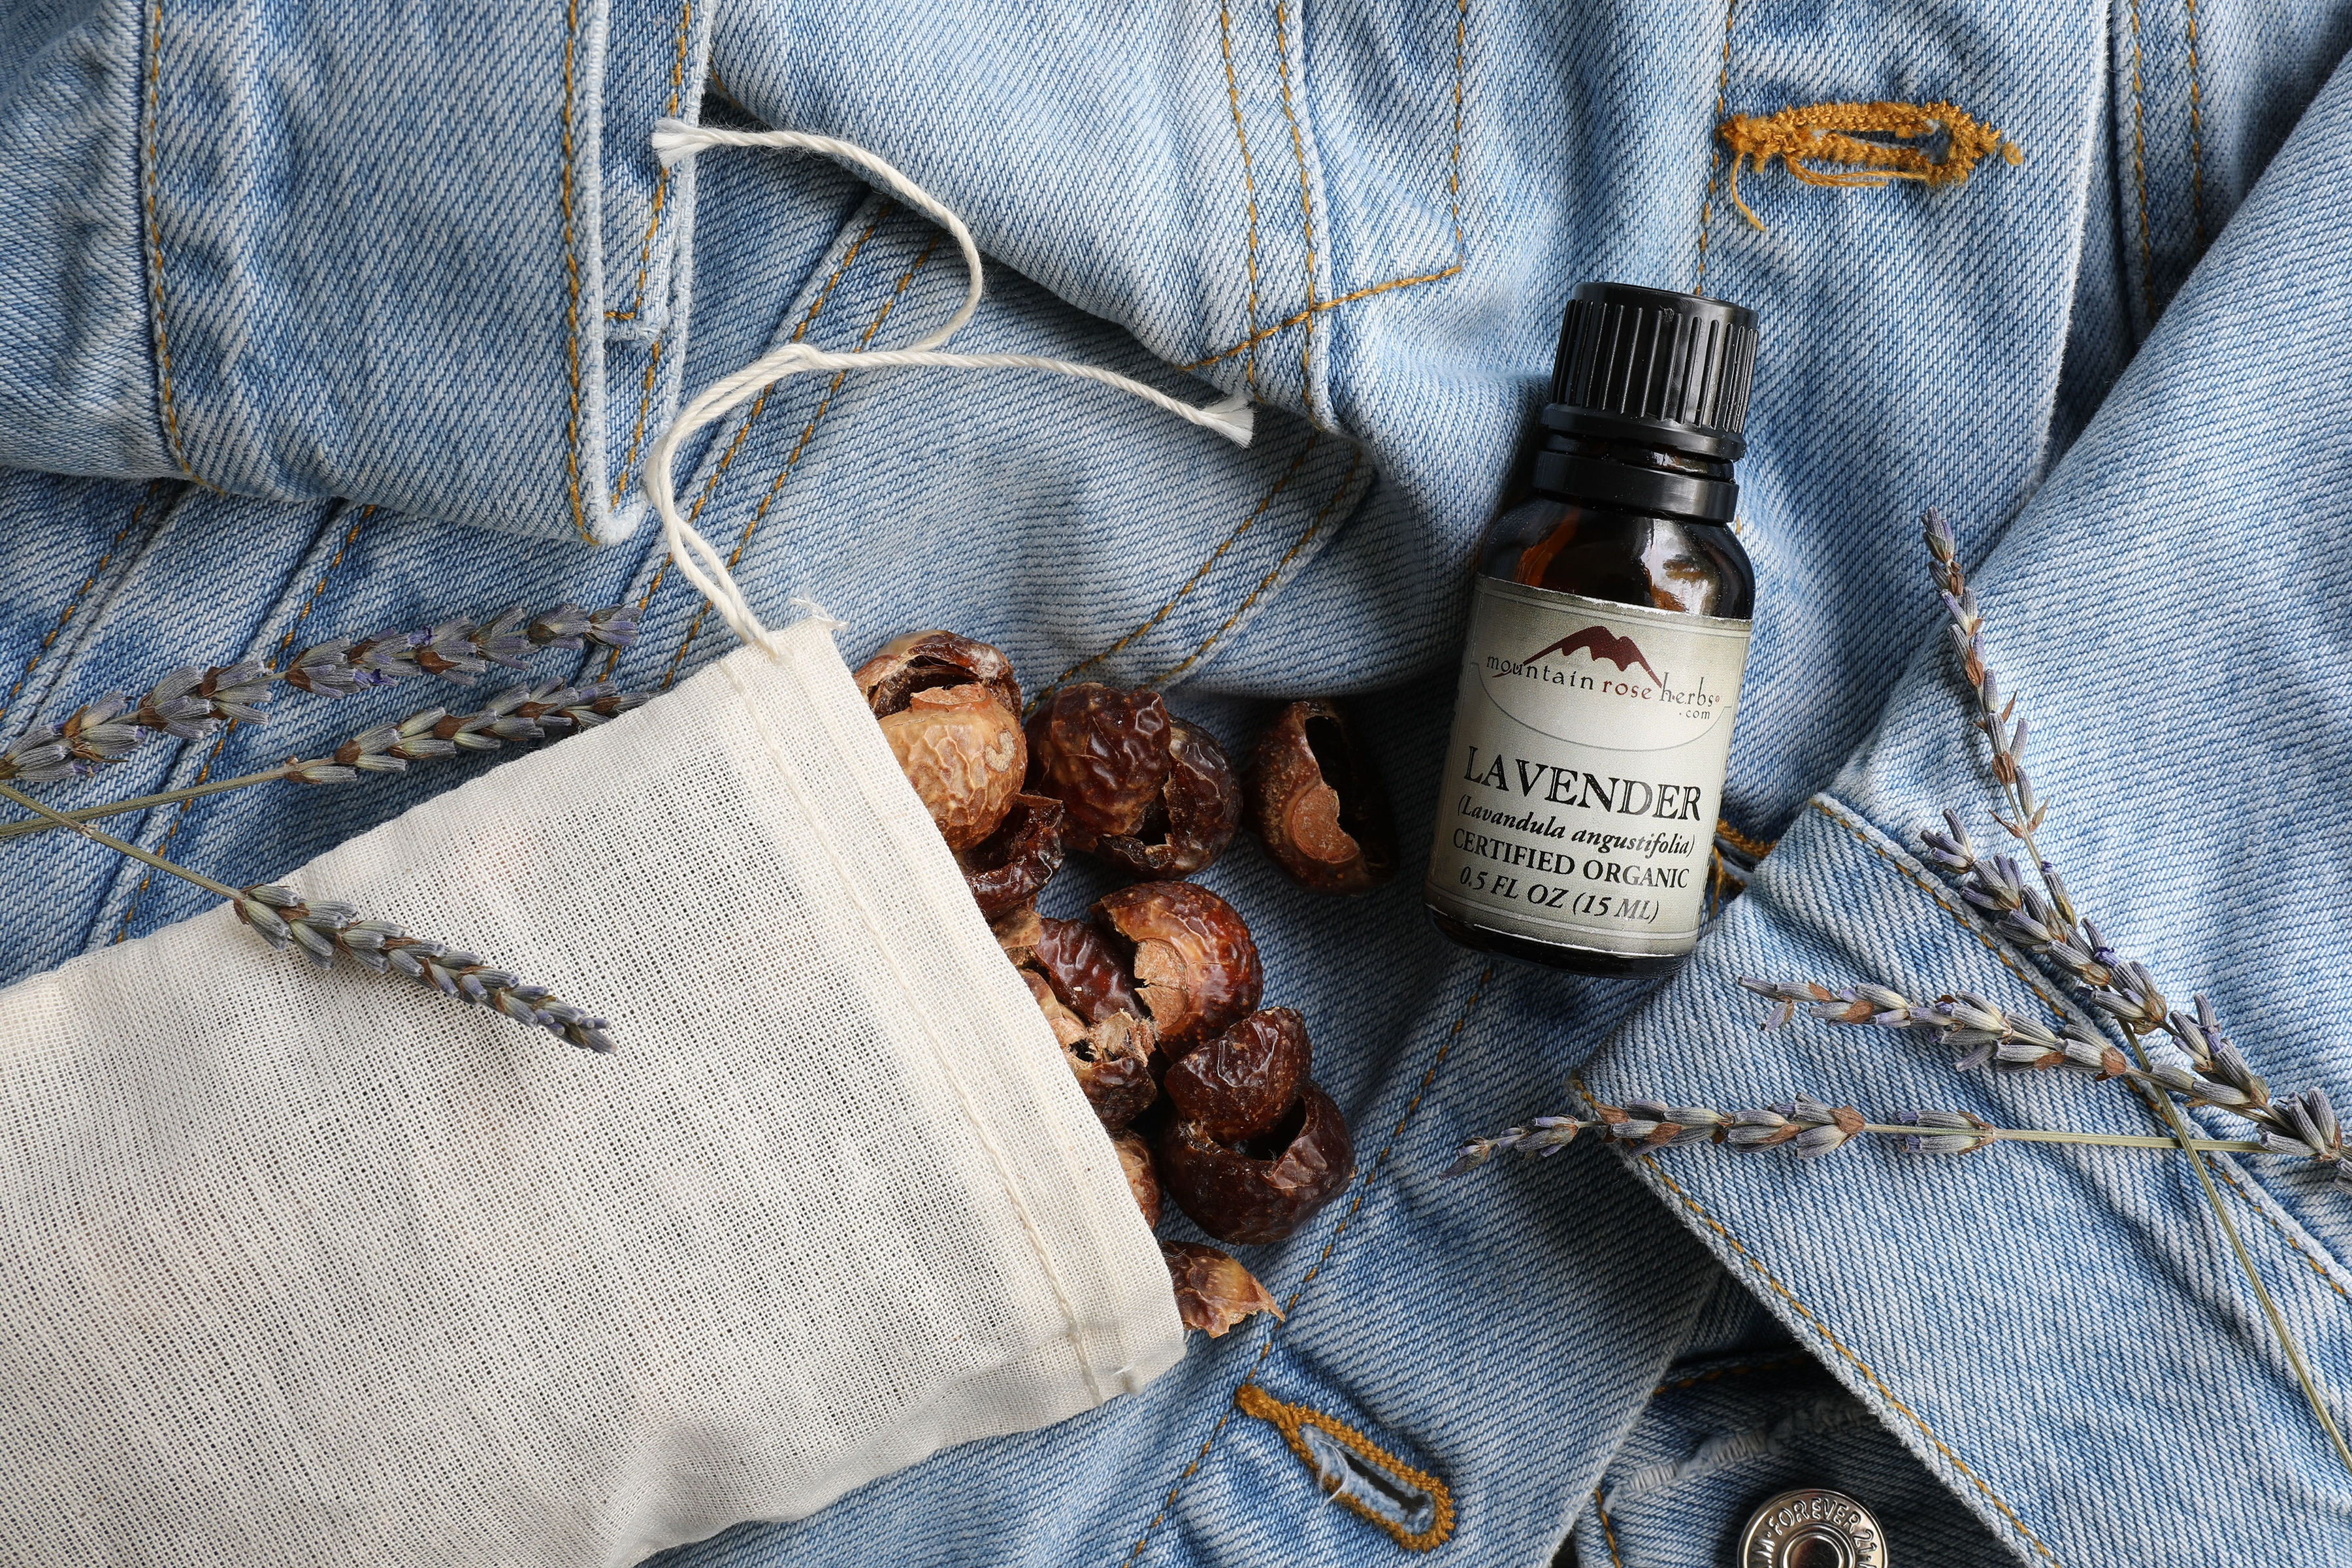 Soap nuts in muslin bag laying on jeans next to lavender essential oil and flowers